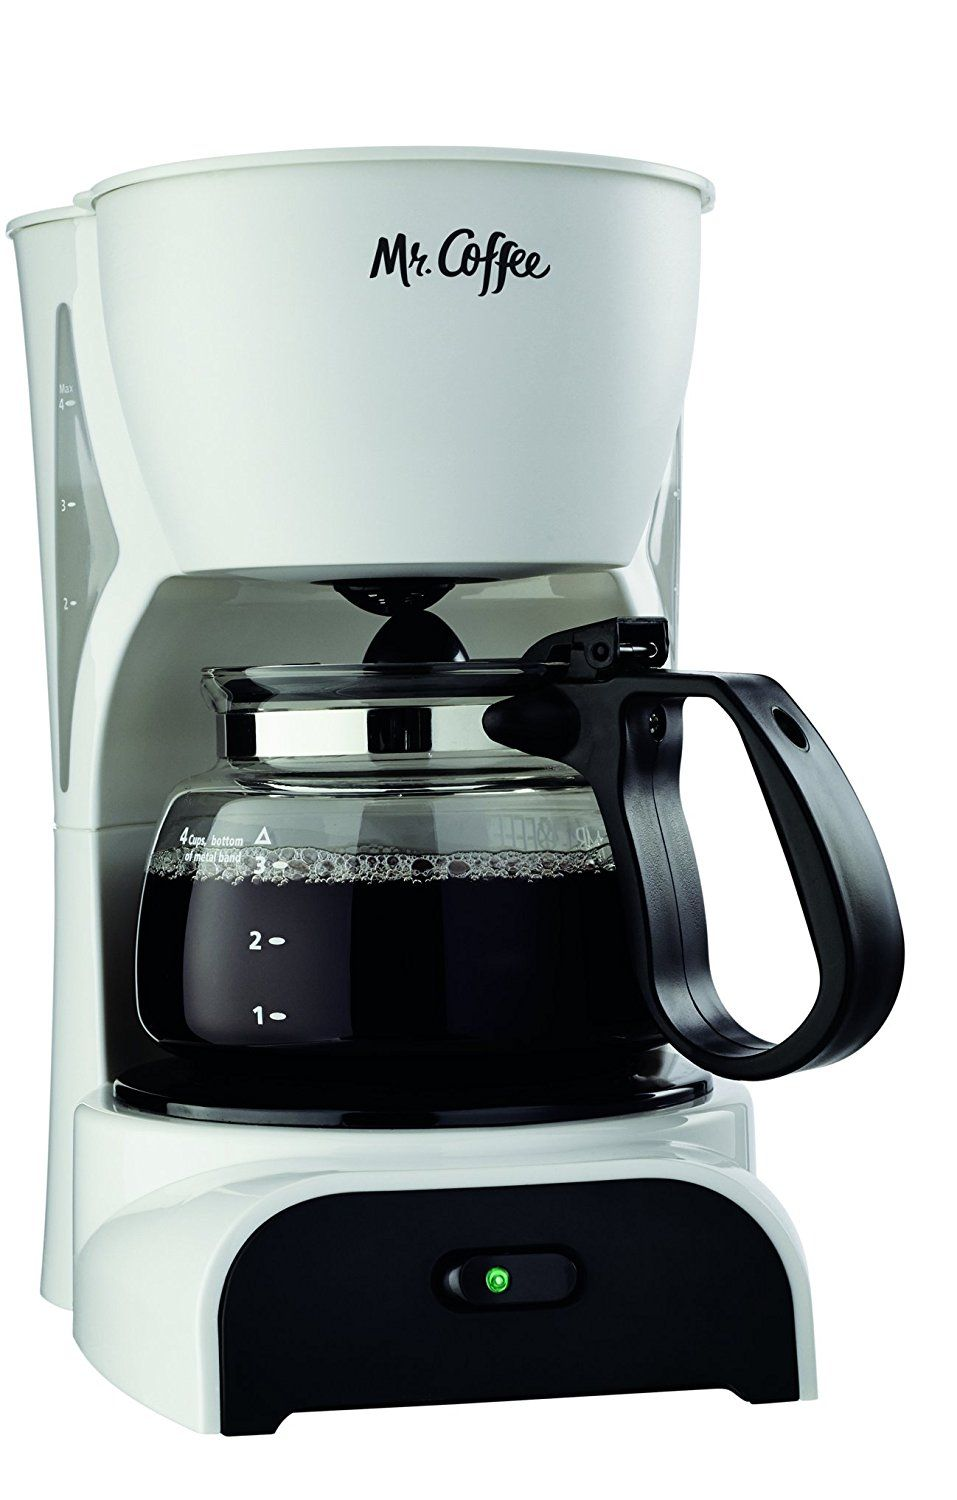 Mr Coffee Dr4mc 4 Cup Coffeemaker White Quickly View This Special Product Click The Image Coffee Maker Mr Coffee 4 Cup Coffee Maker Coffee Maker